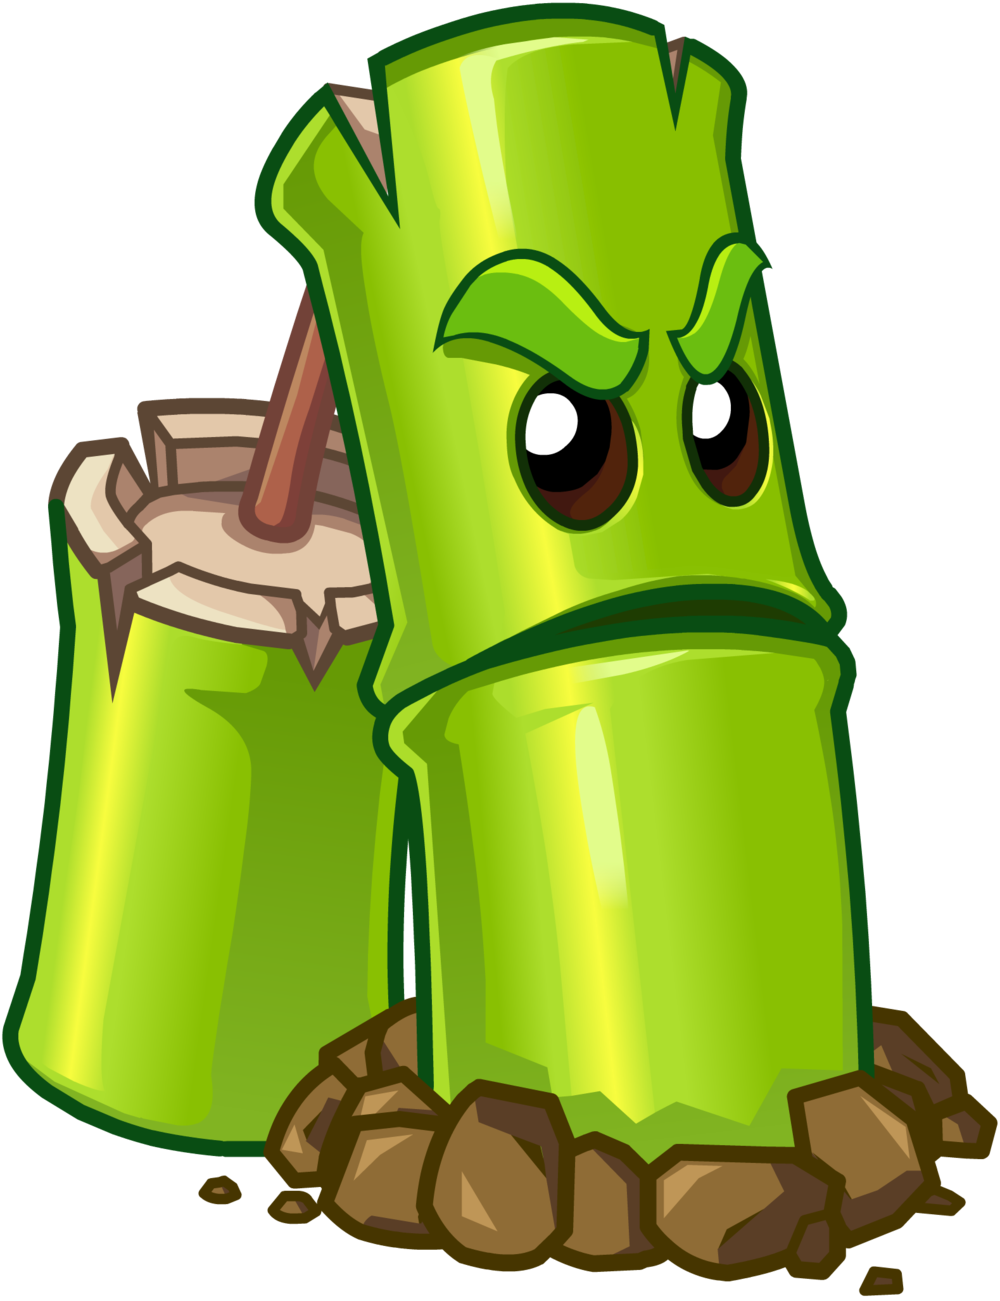 plants vs zombies 2 bamboo plant by illustation16 on turnip clipart free enormous turnip clipart